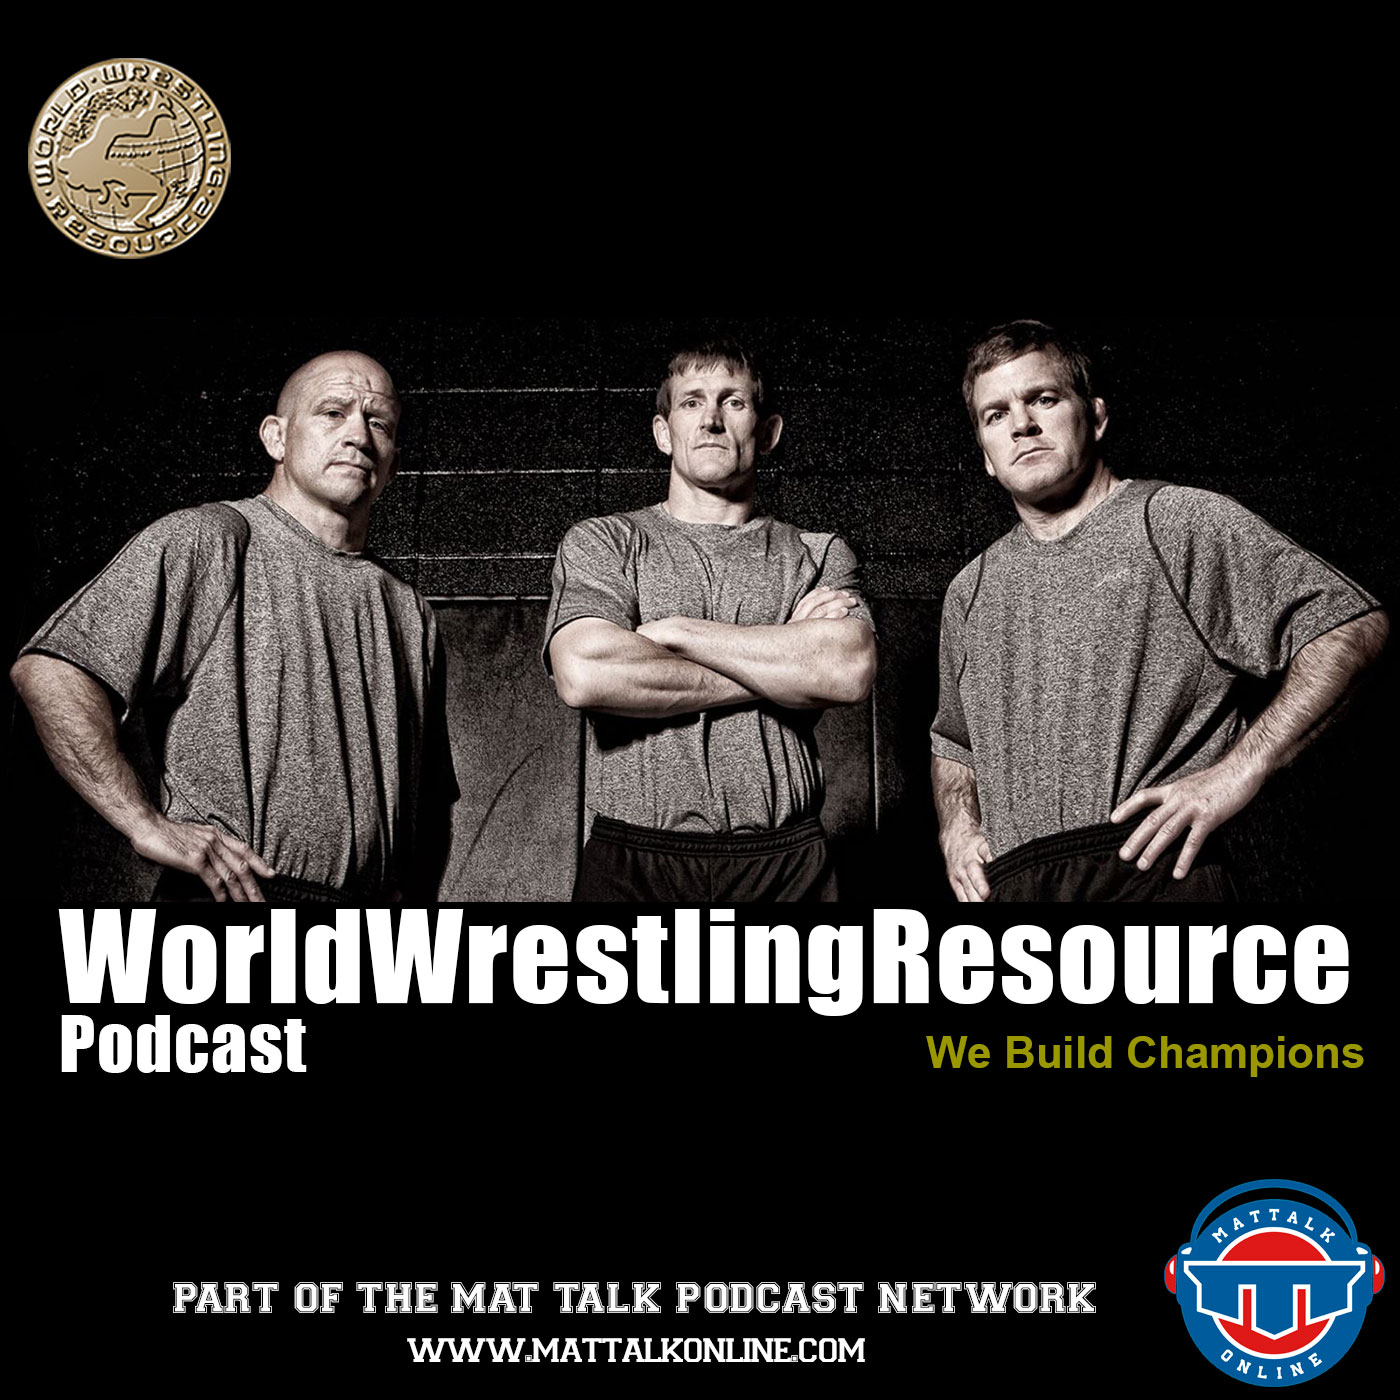 Artwork for WWR09: Discussing the Multi-Divisional National Duals with Jon McGovern and deciding when to redshirt and who to start with Terry Brands